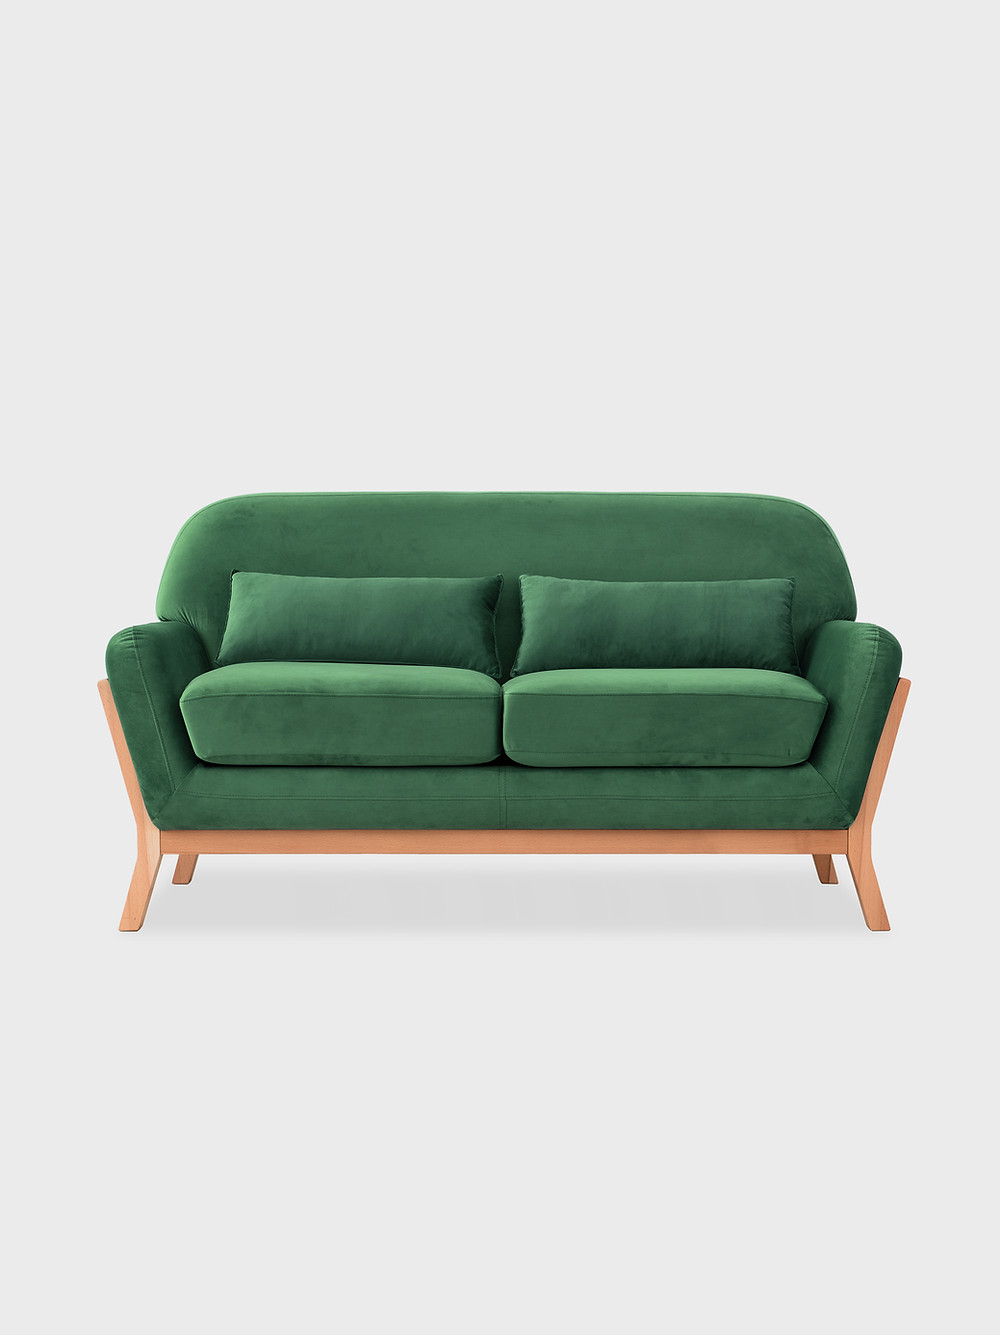 They Say Green Means Money! Maybe You Should Get a Green Couch.